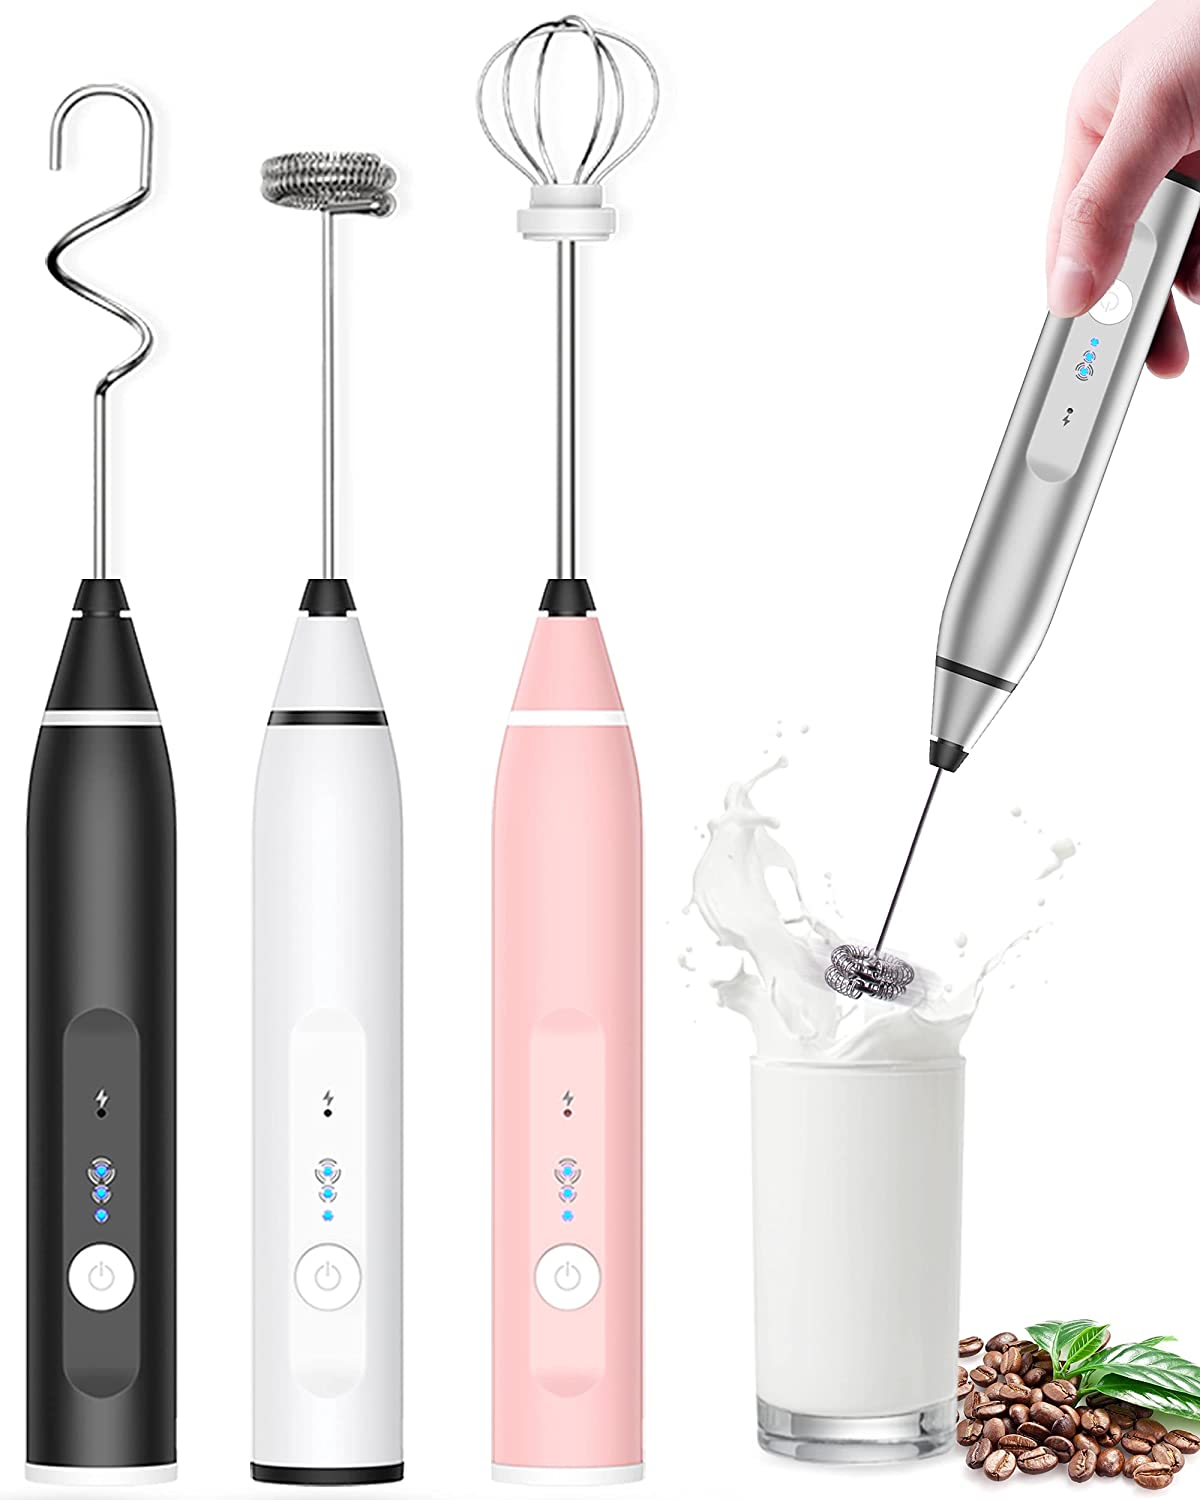 Milk Frother Rechargeable Handheld, Electric Whisk Coffee Frother Mixer with 3 Stainless whisks, 3-Speed Adjustable Foam Maker Blender for Coffee Matcha Latte Cappuccino Hot Chocolate Keto Diet(Silver)